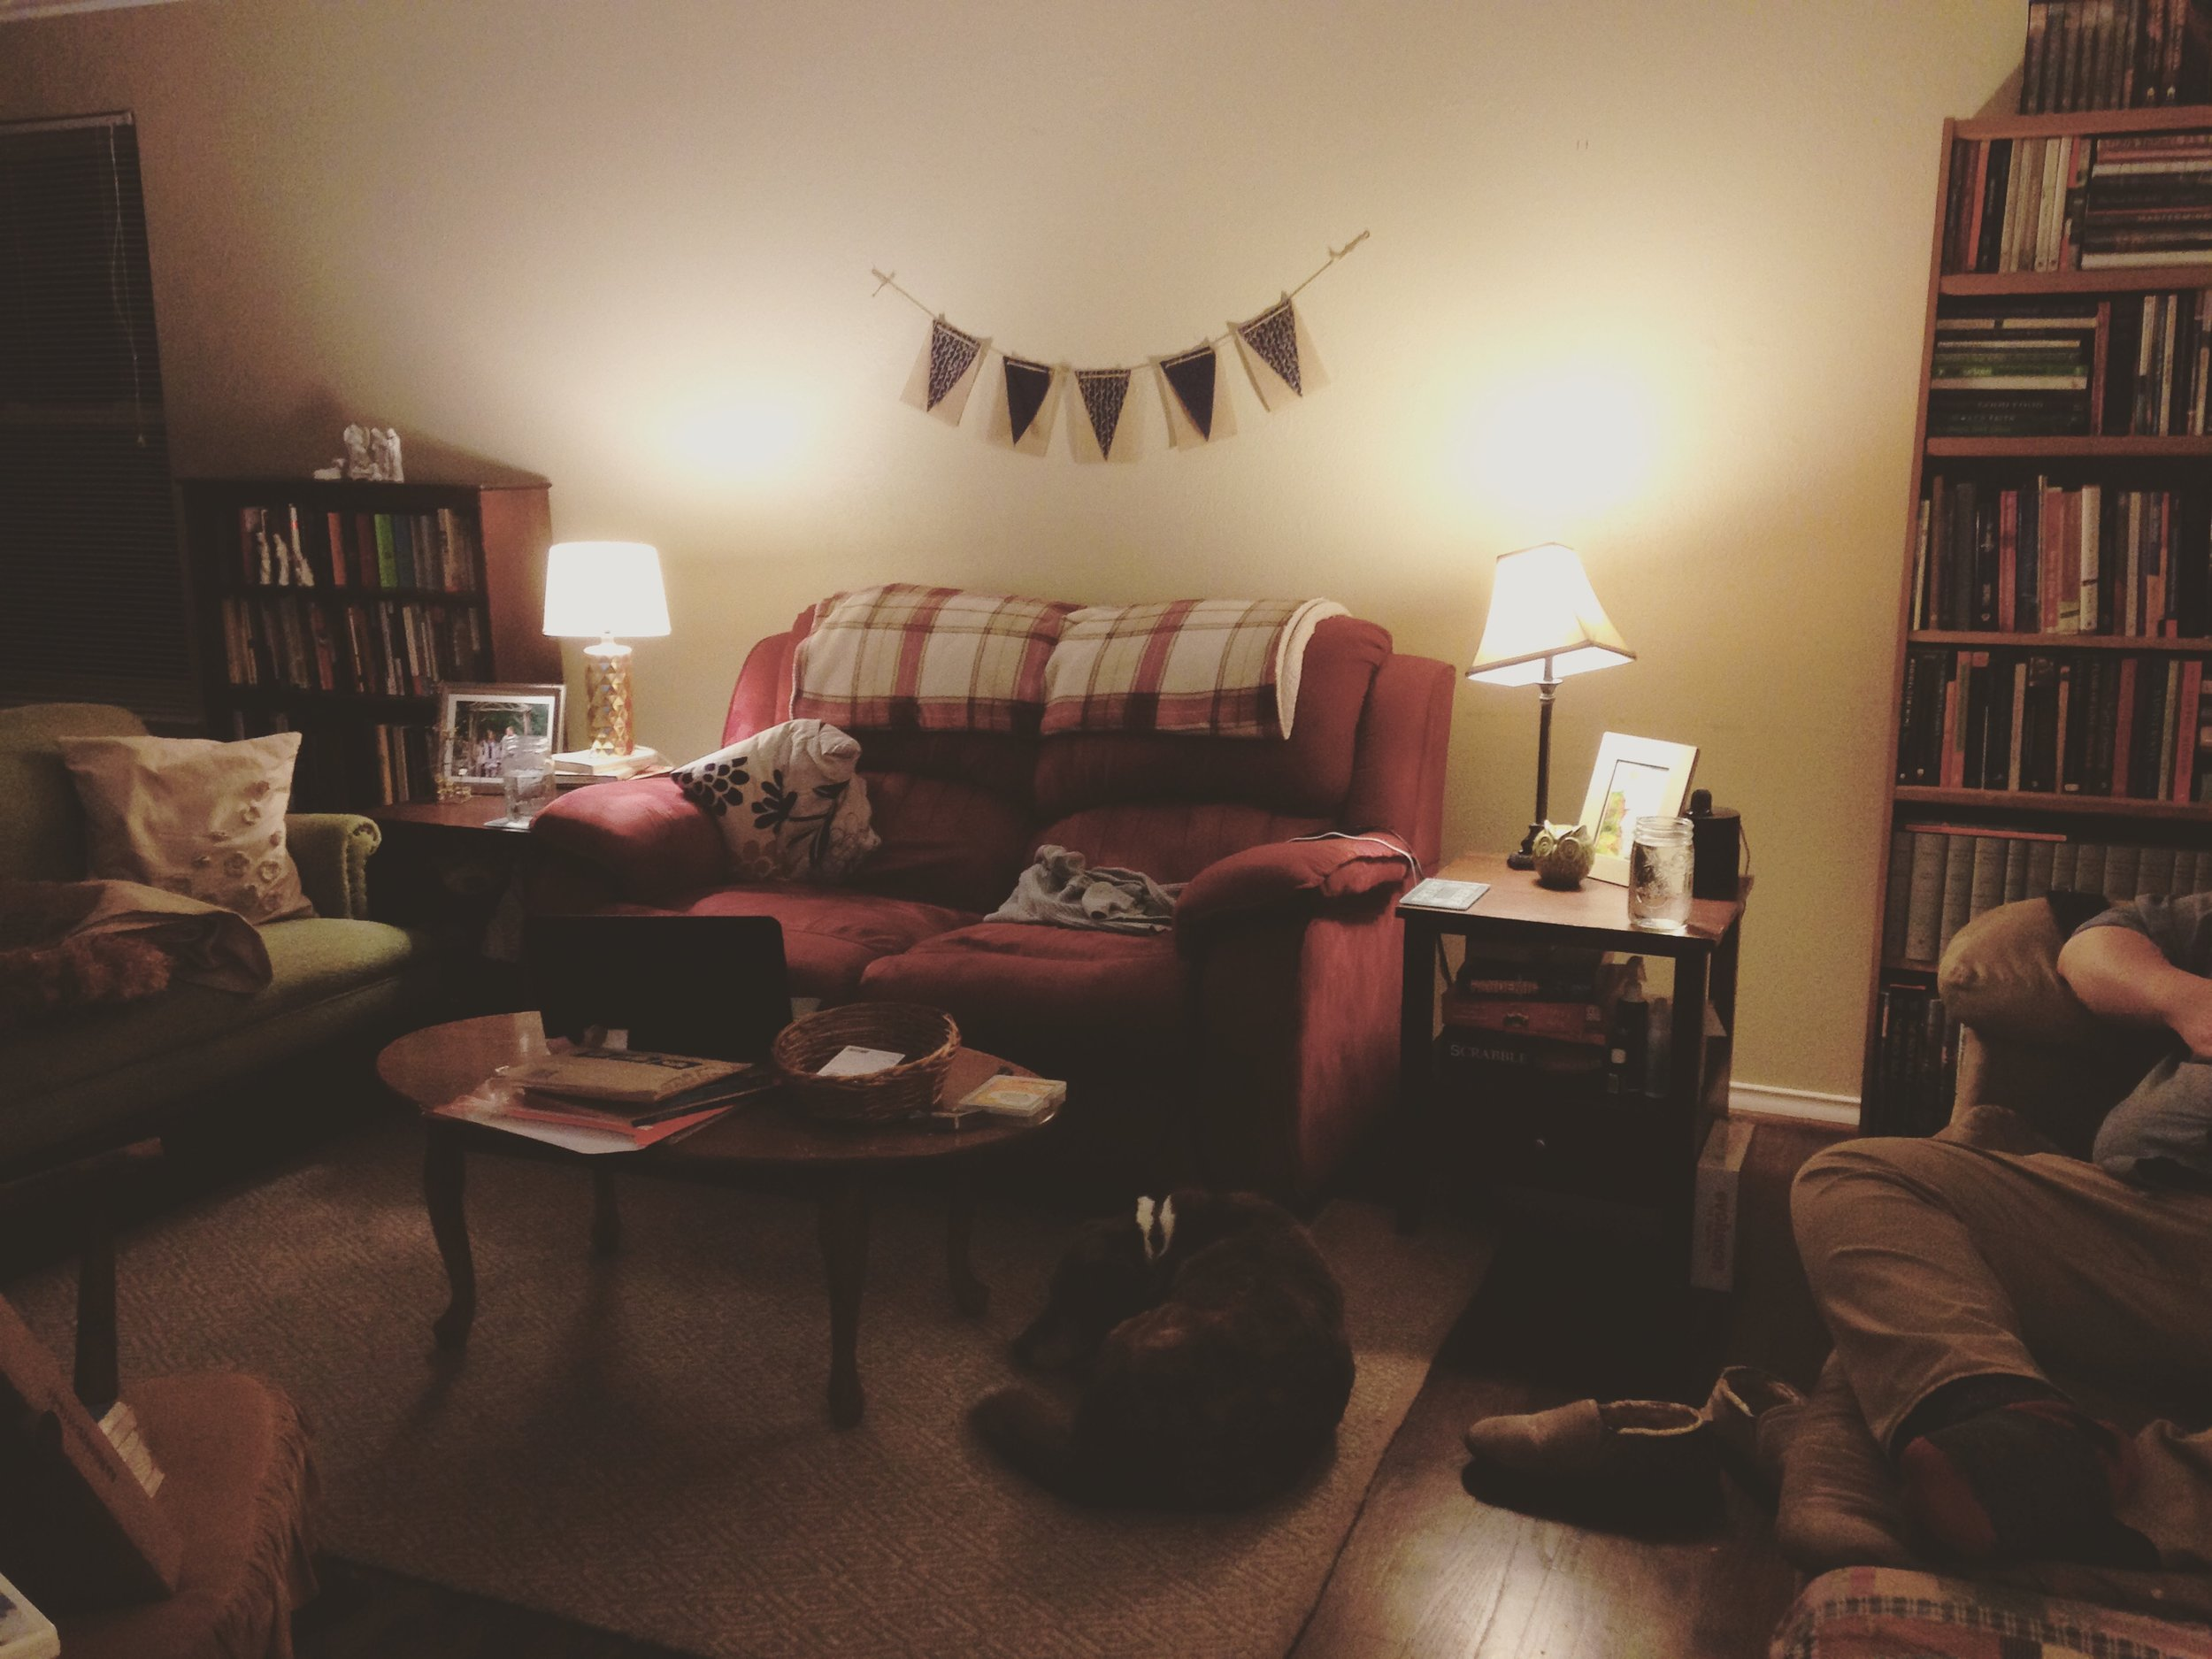 (Example: Our Living Room. Both love seats were hand-me-downs from family members, both bookcases and end tables are from secondhand stores, the brown couch we got for $40 from a neighbor, and literally everything else was a gift.)